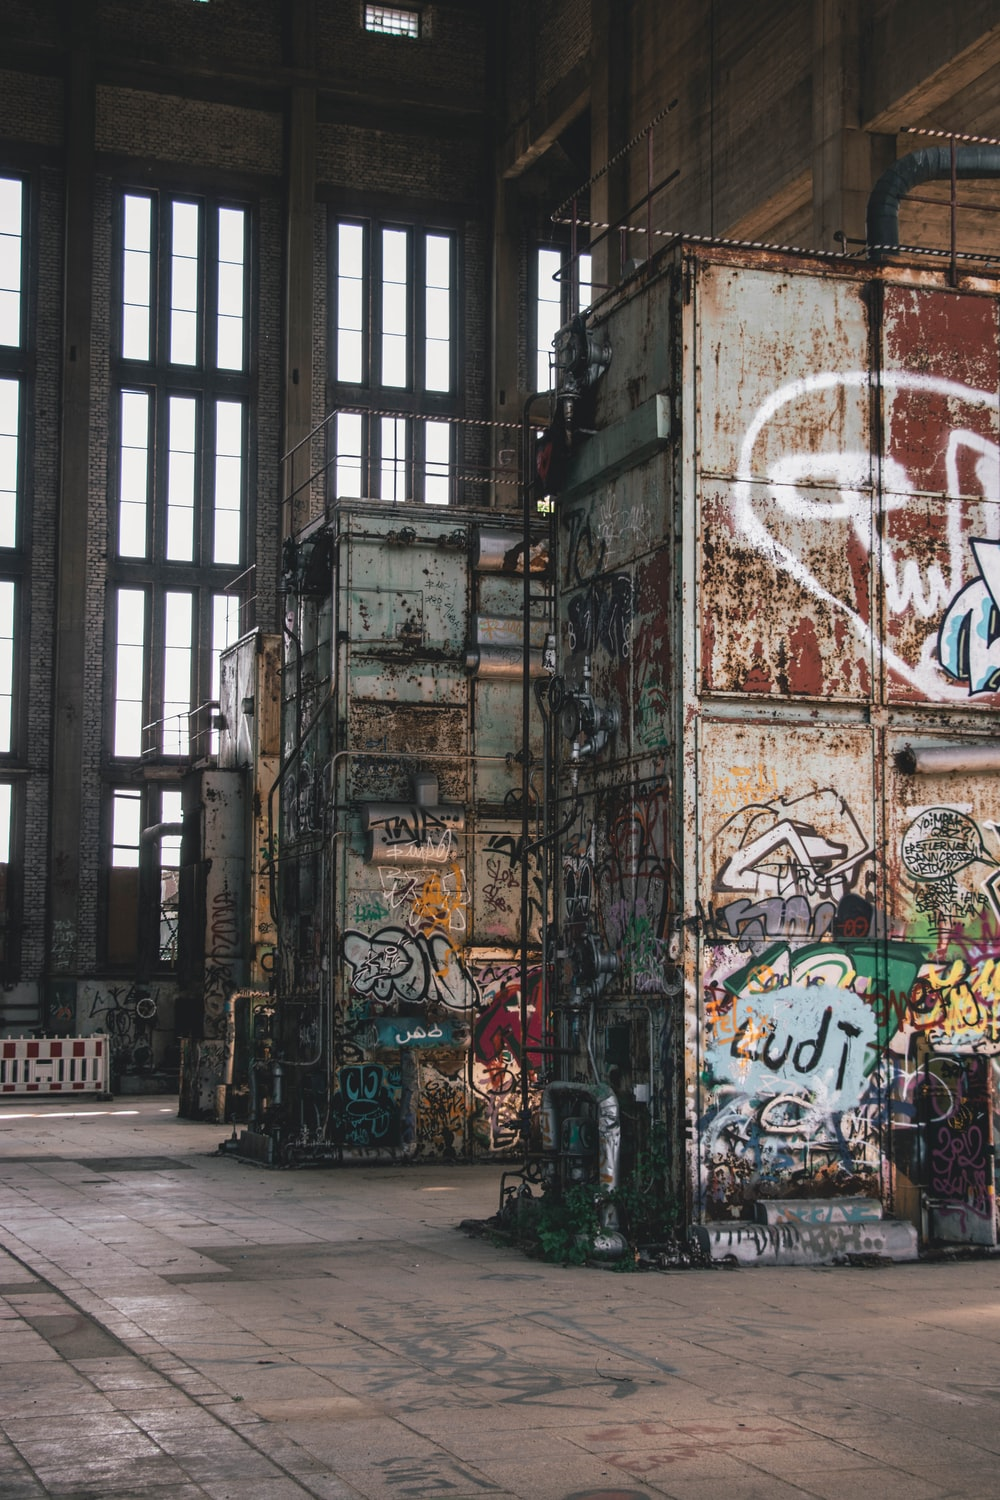 photography of intermodal containers with graffiti